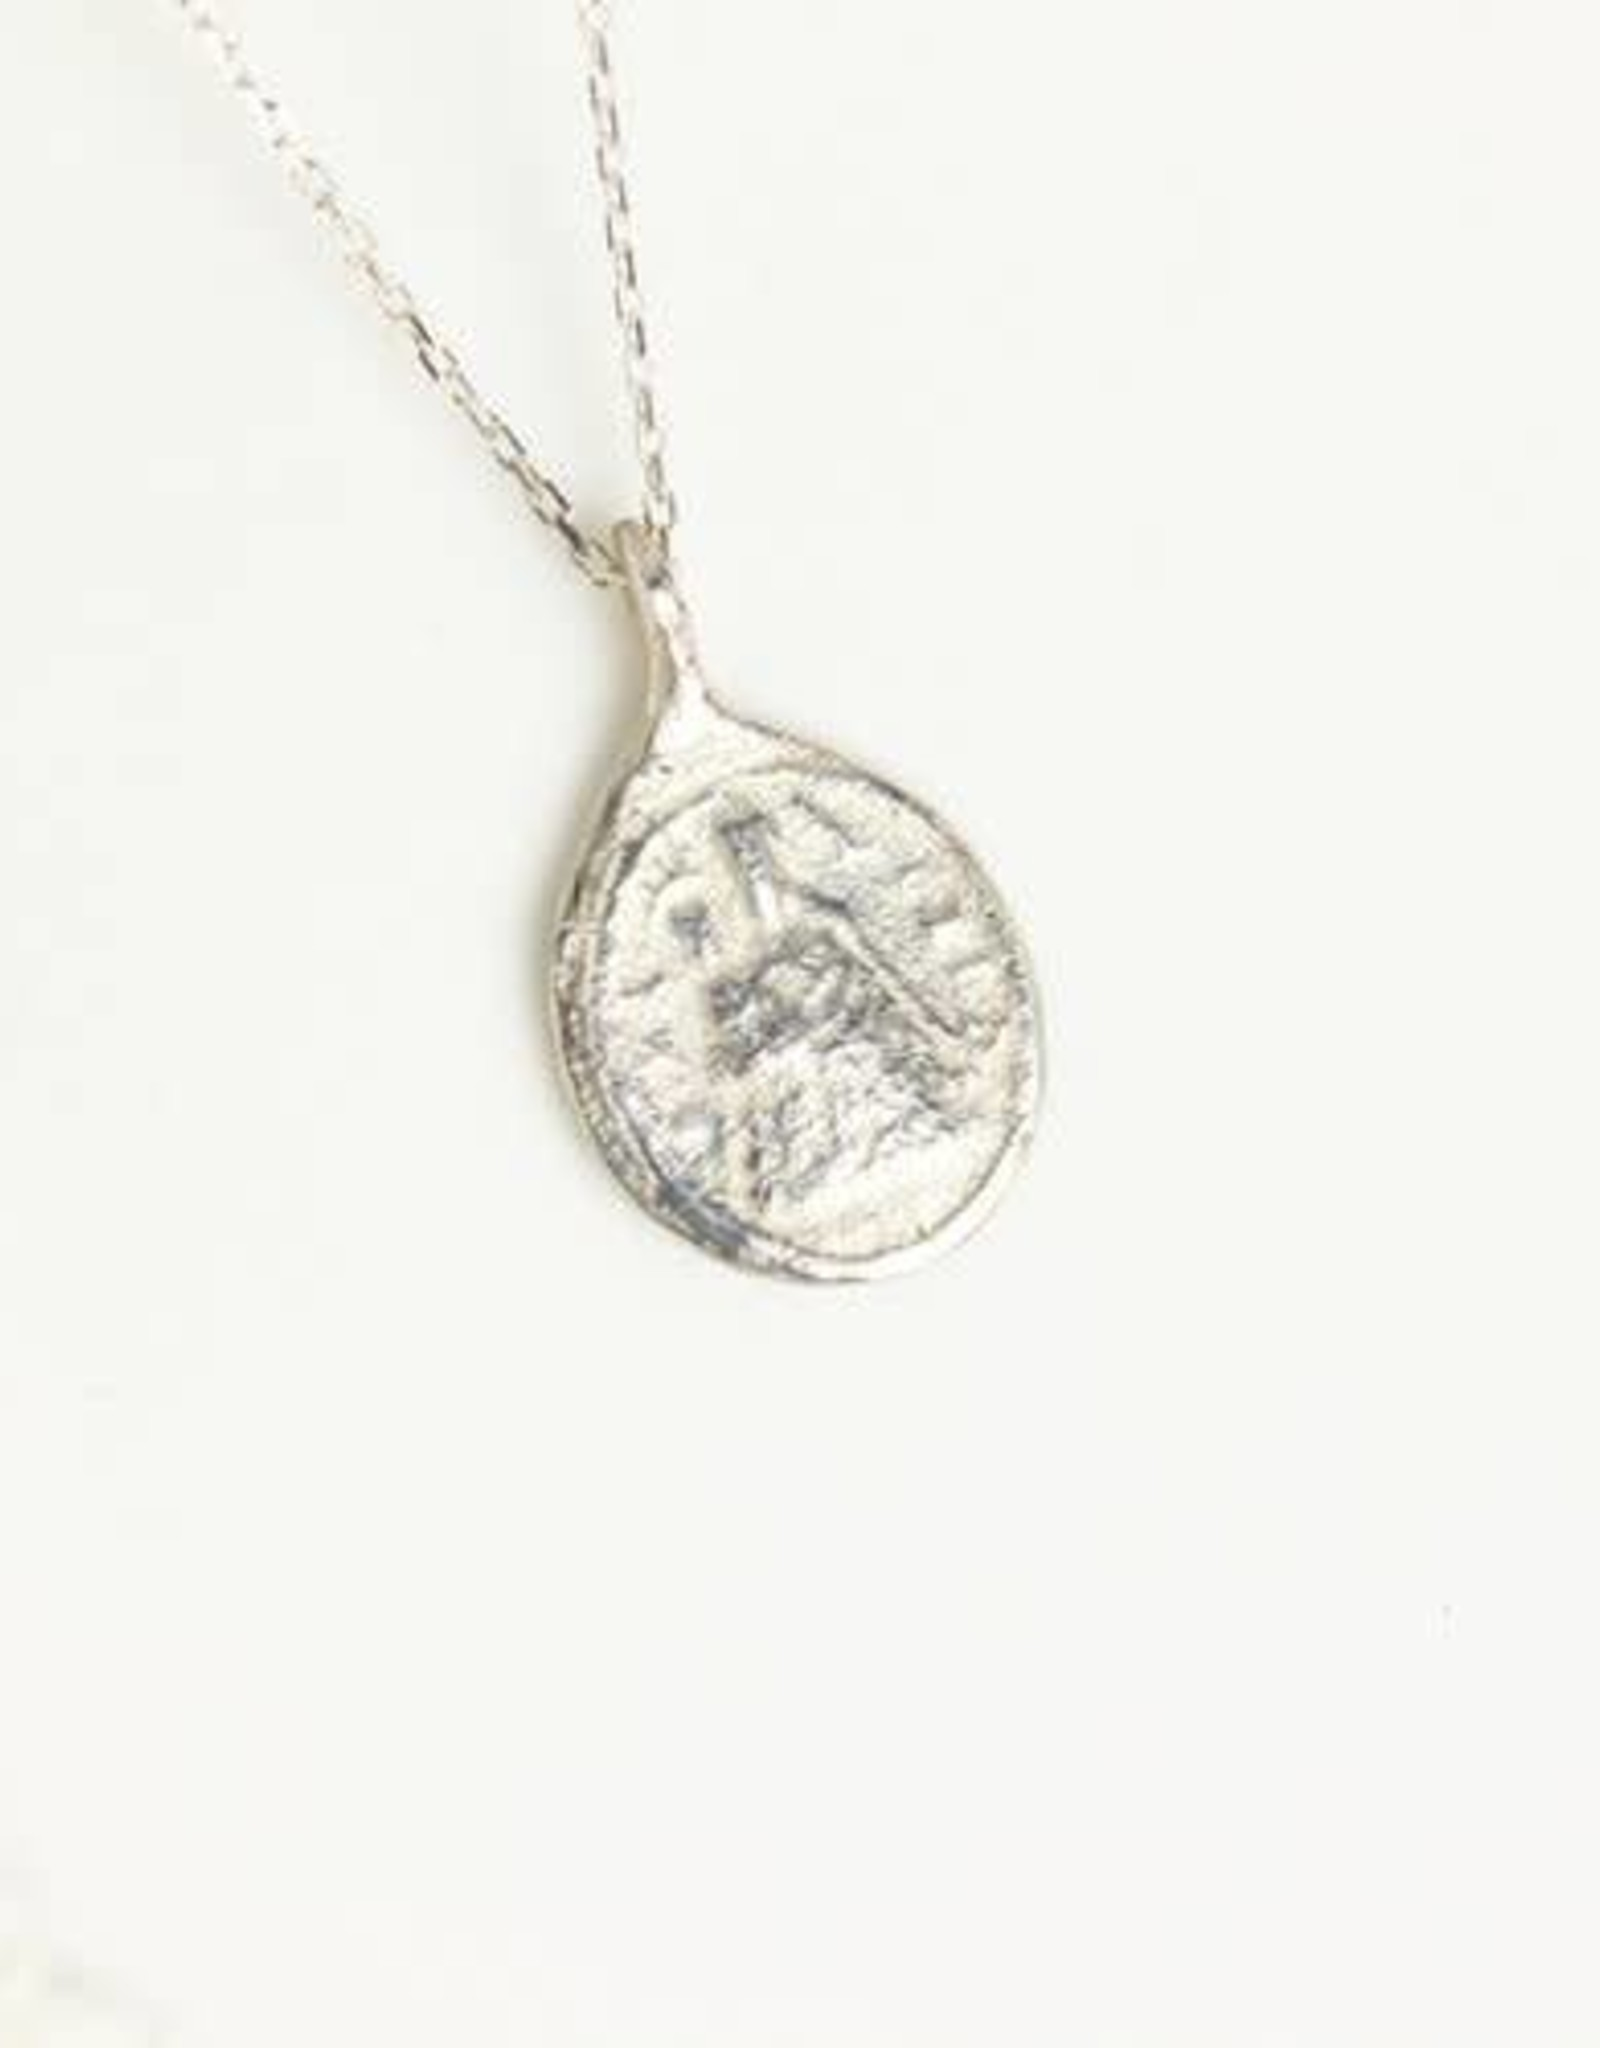 Robin Haley Jewelry The Mother Artifact Necklace - Double-Sided